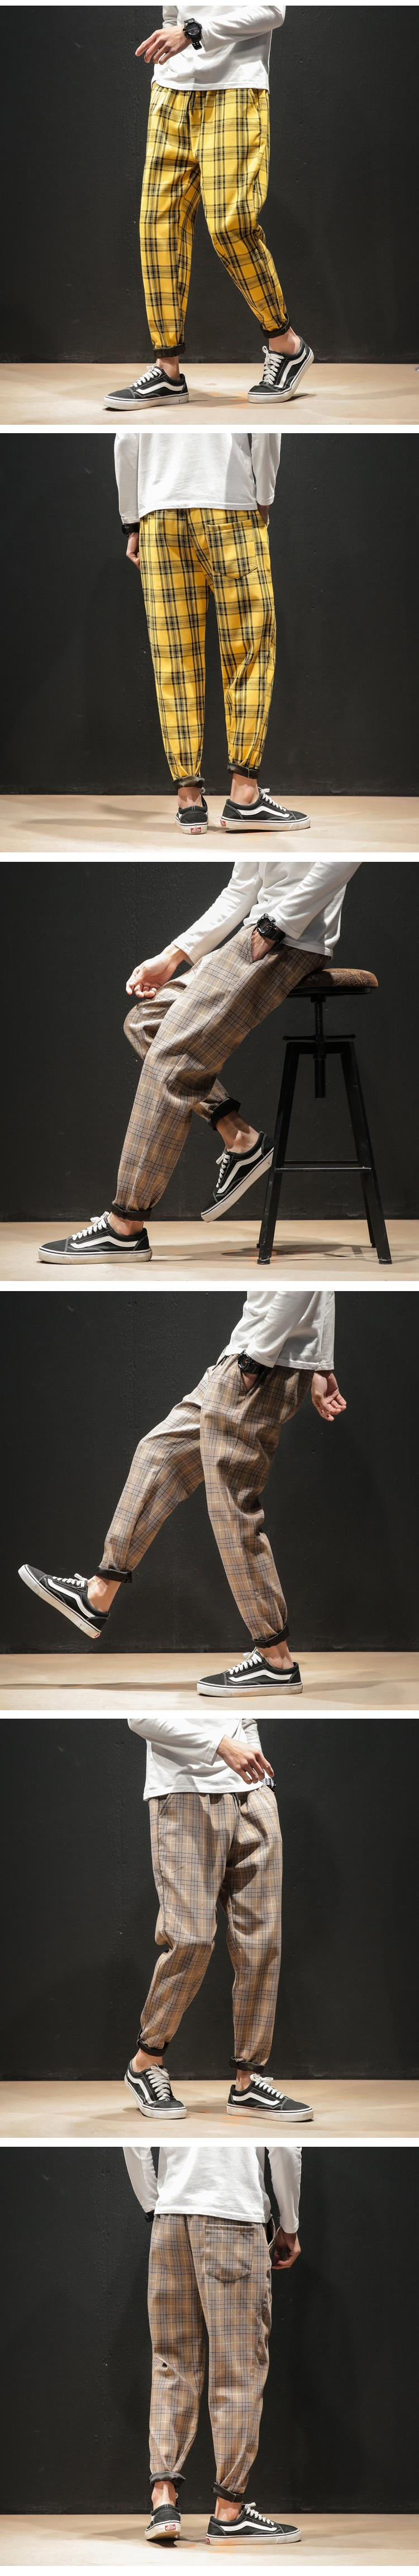 H56e94545b1f243f388e94a4515458f57t Dropshipping Japanese Streerwear Men Plaid Pants 2019 Autumn Fashion Slim Man Casual Trousers Korean Male Harem Pants